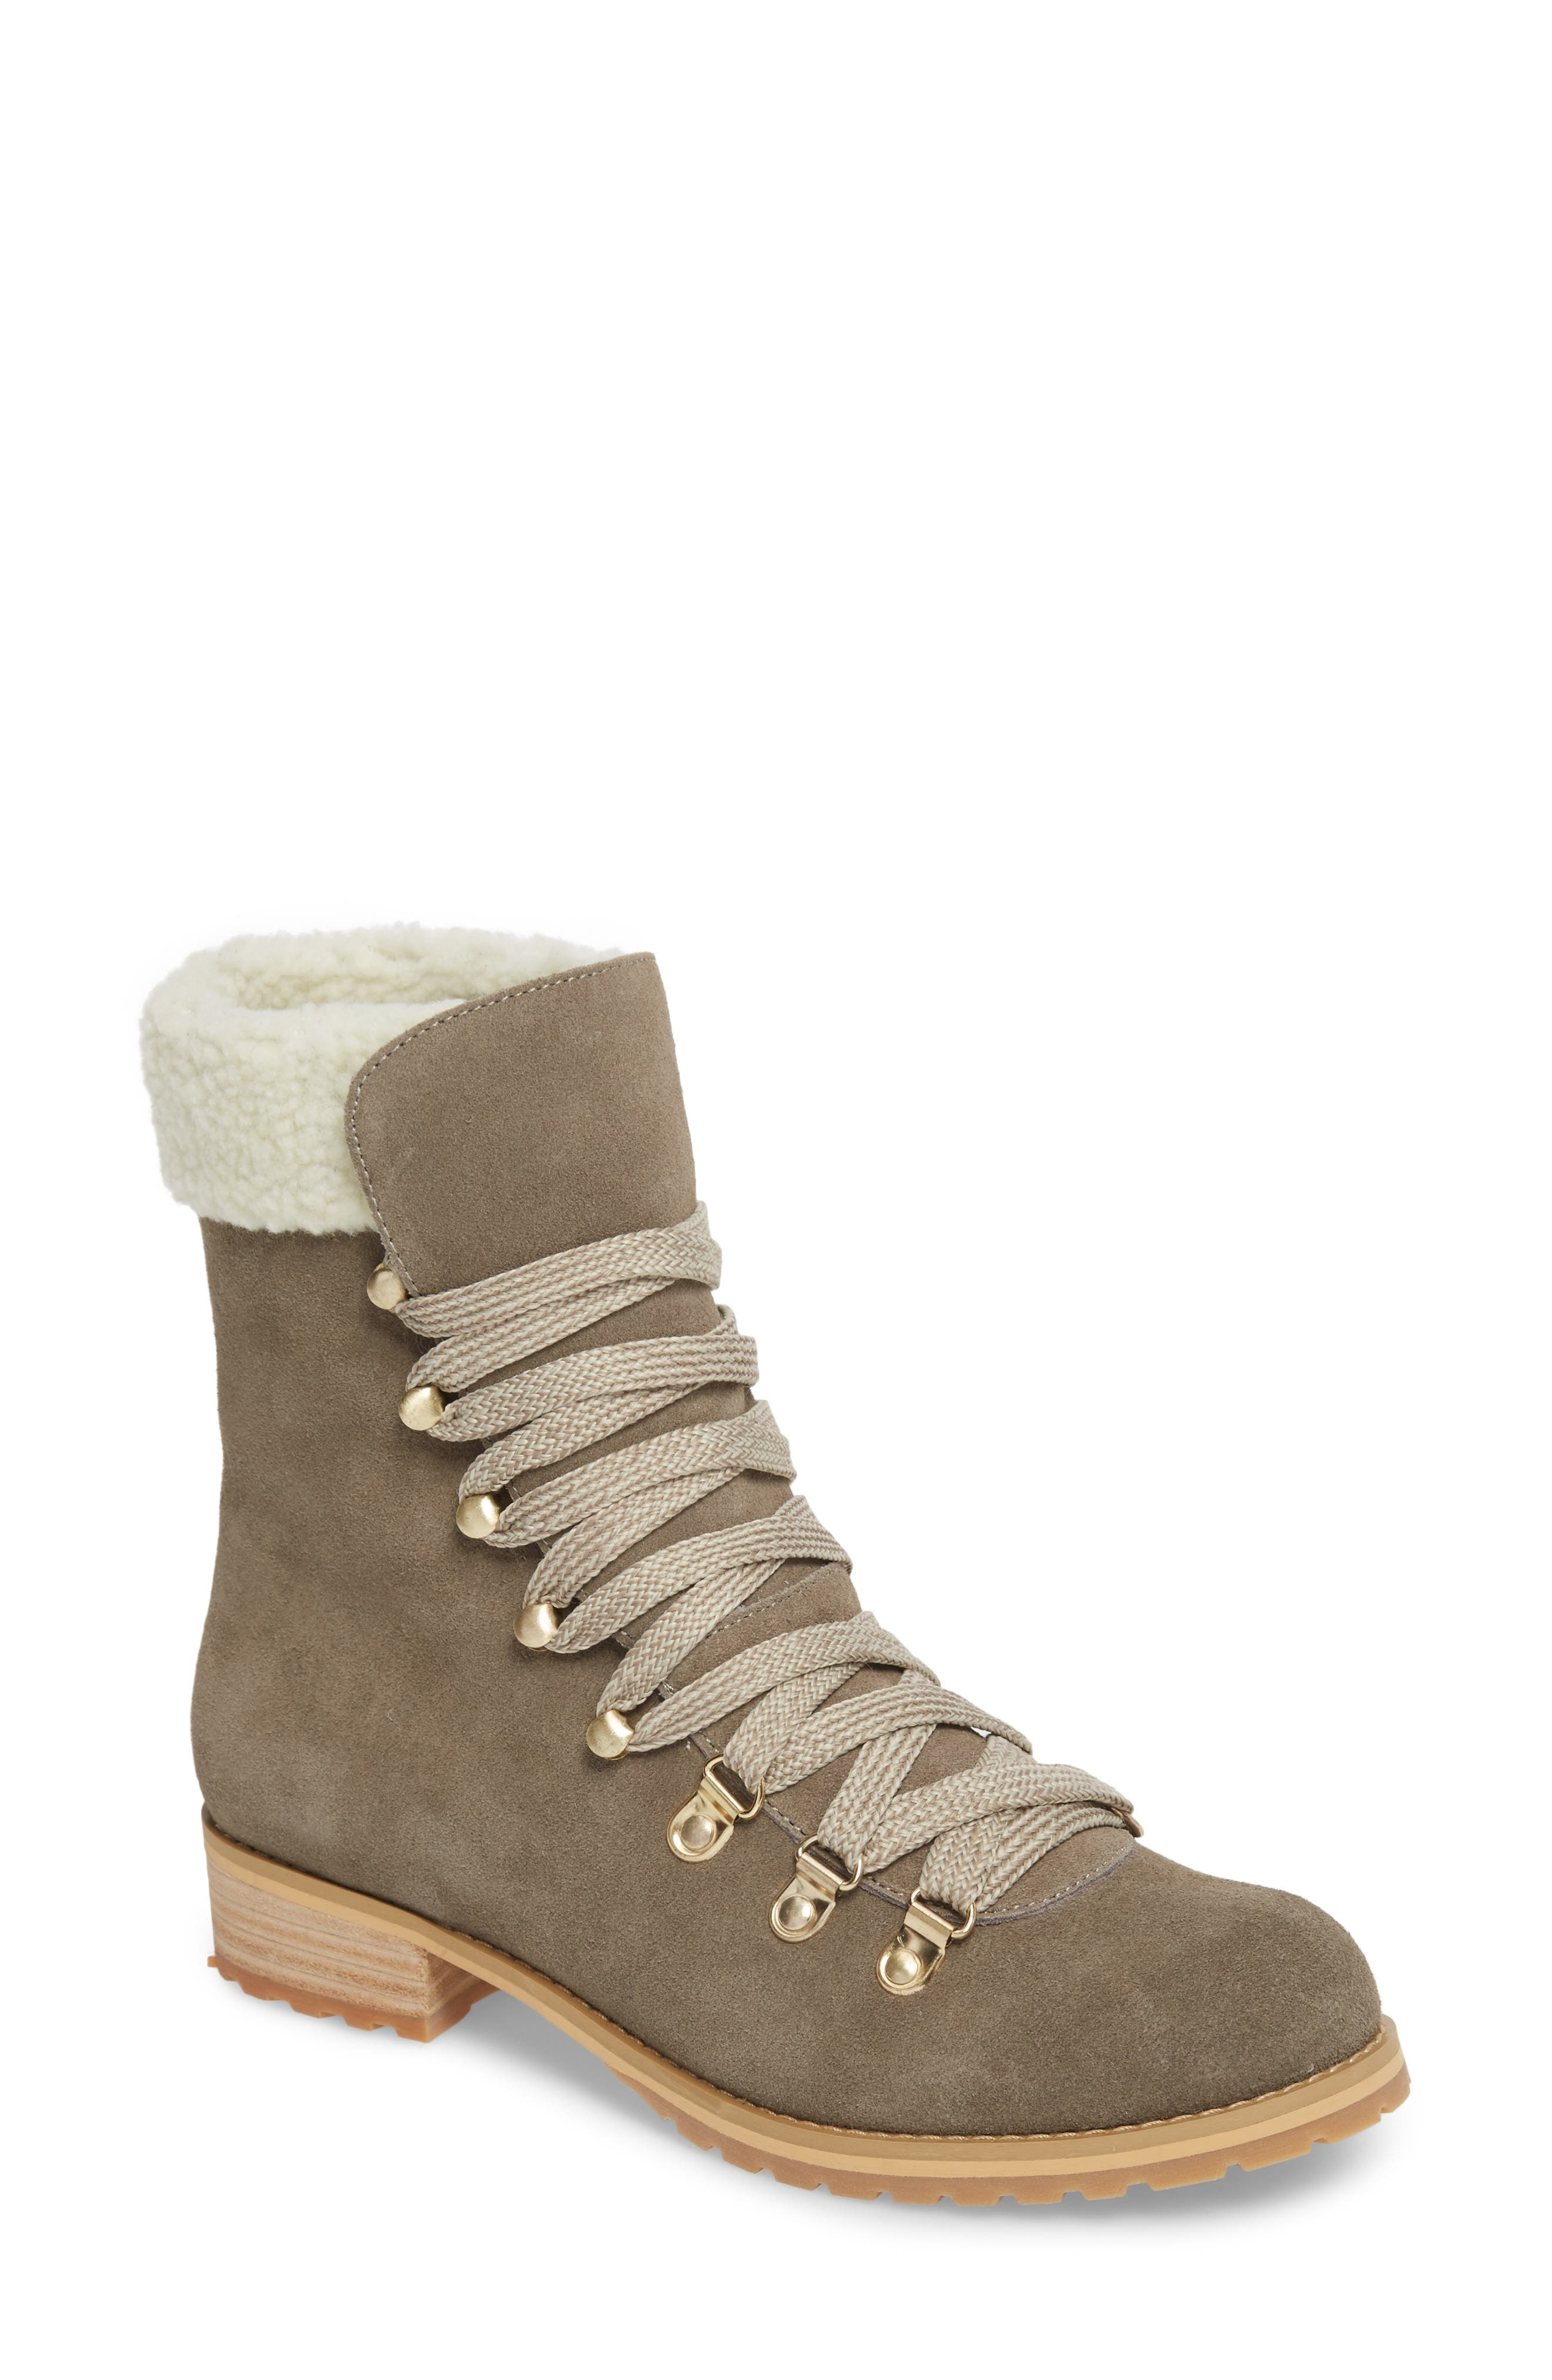 Faux Shearling Trim Ada Boot,                             Main thumbnail 1, color,                             Mushroom